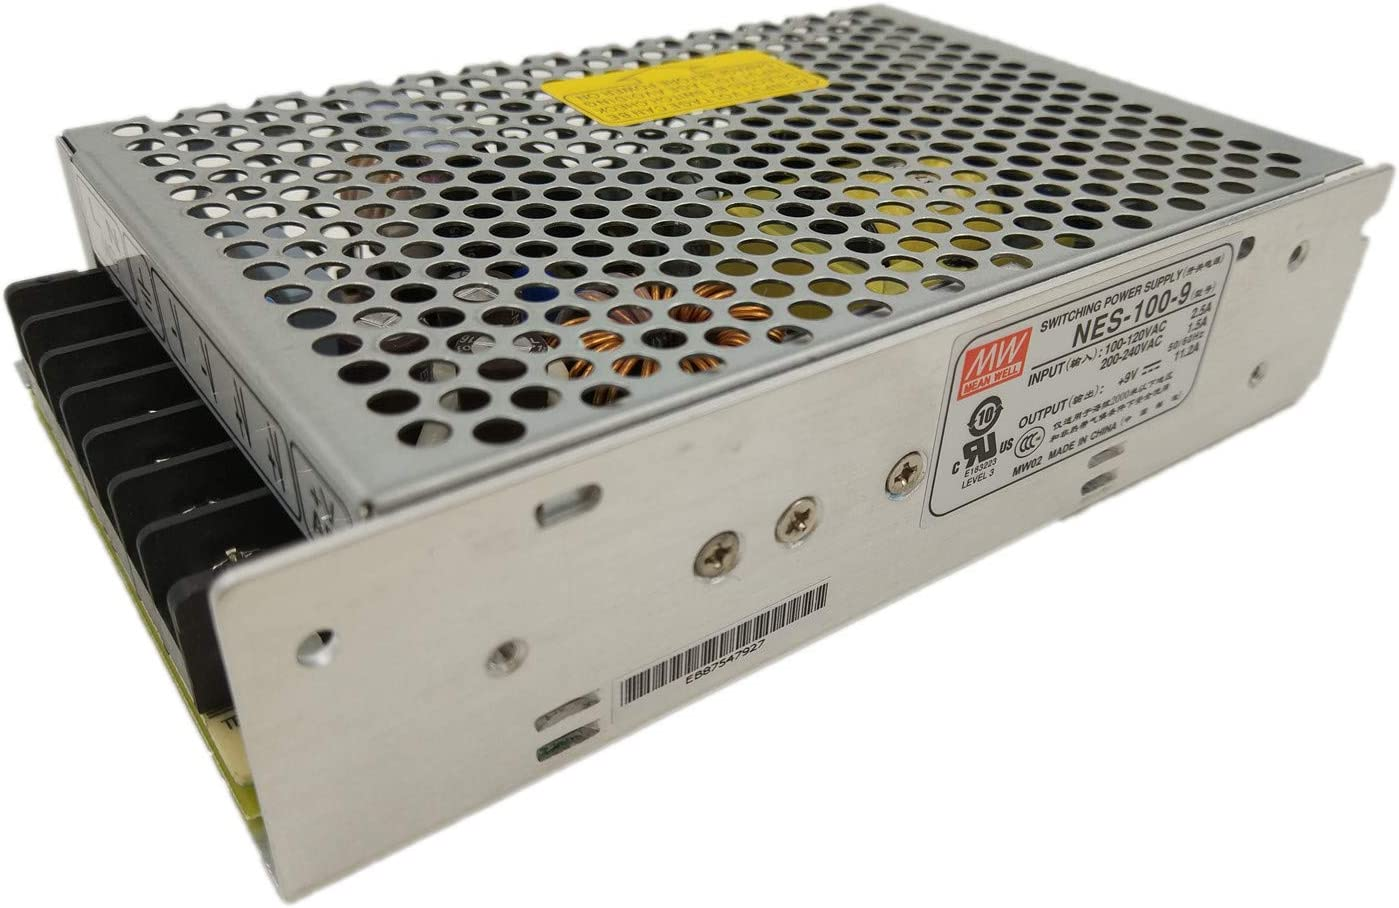 MW Mean Well NES-100-9 9V 11.2A 100W Single Output Switching Power Supply